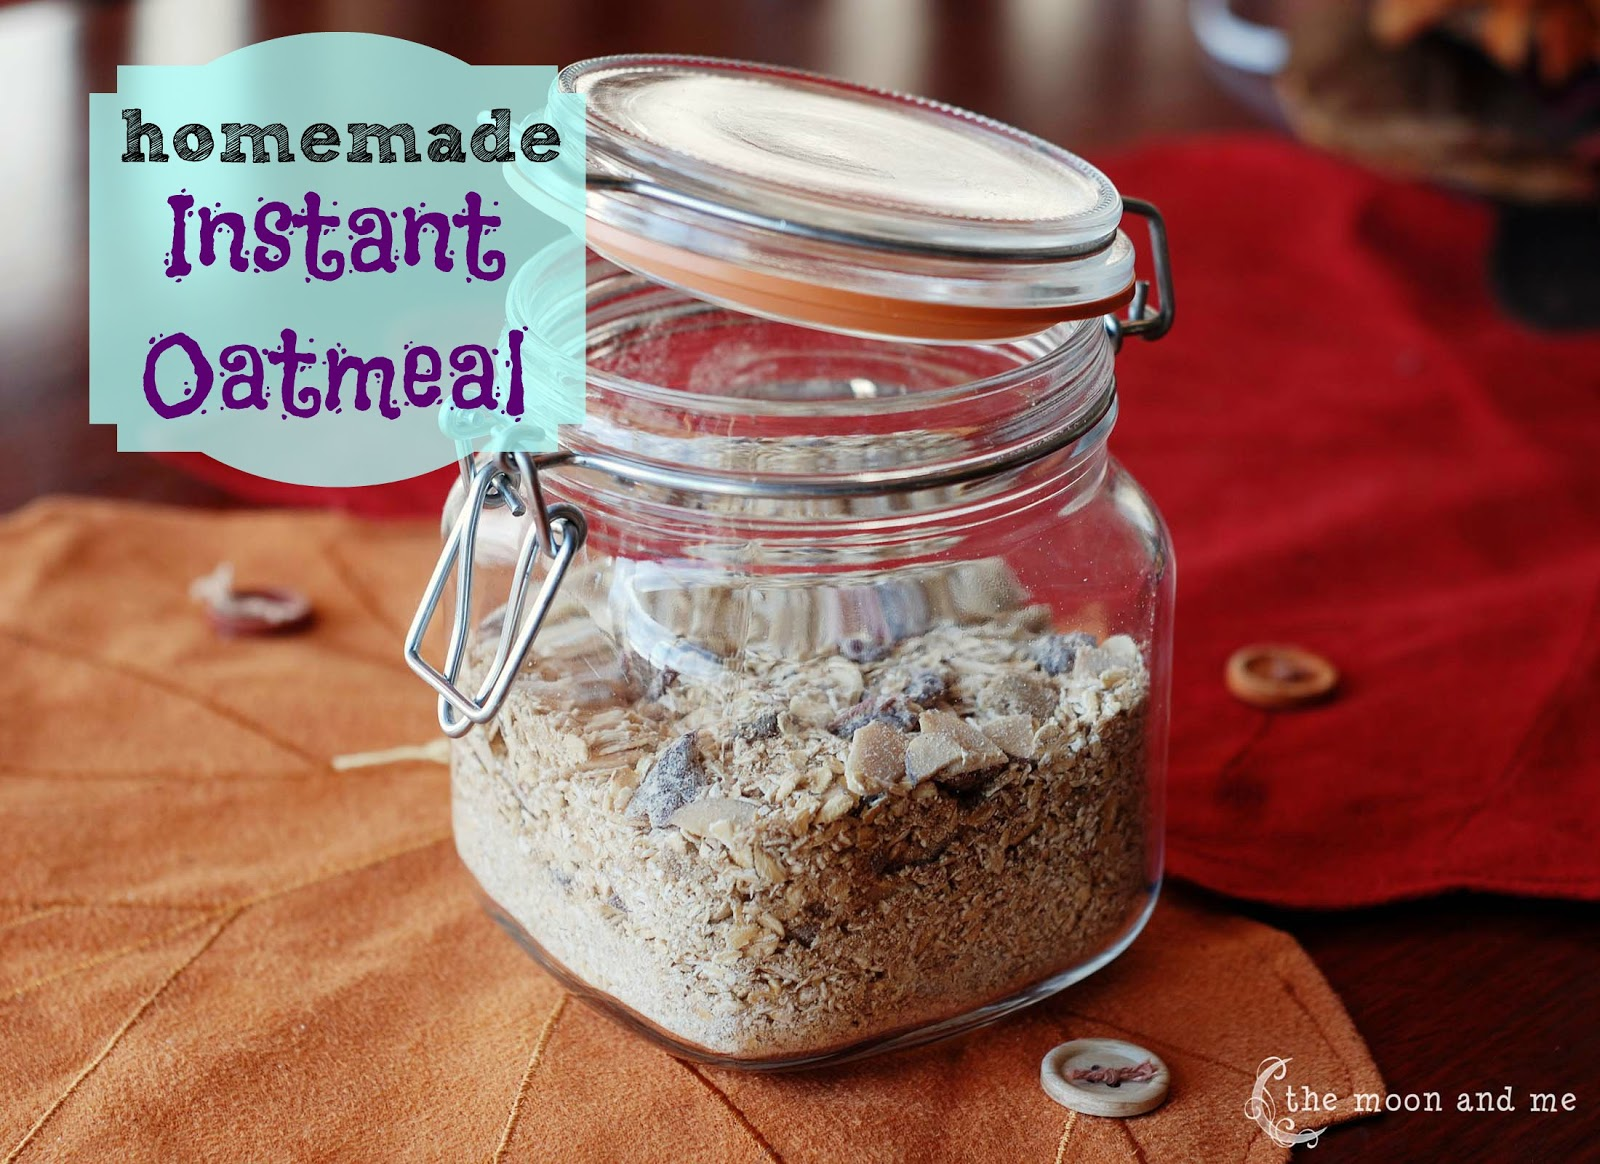 The Moon and Me: Homemade Instant Oatmeal